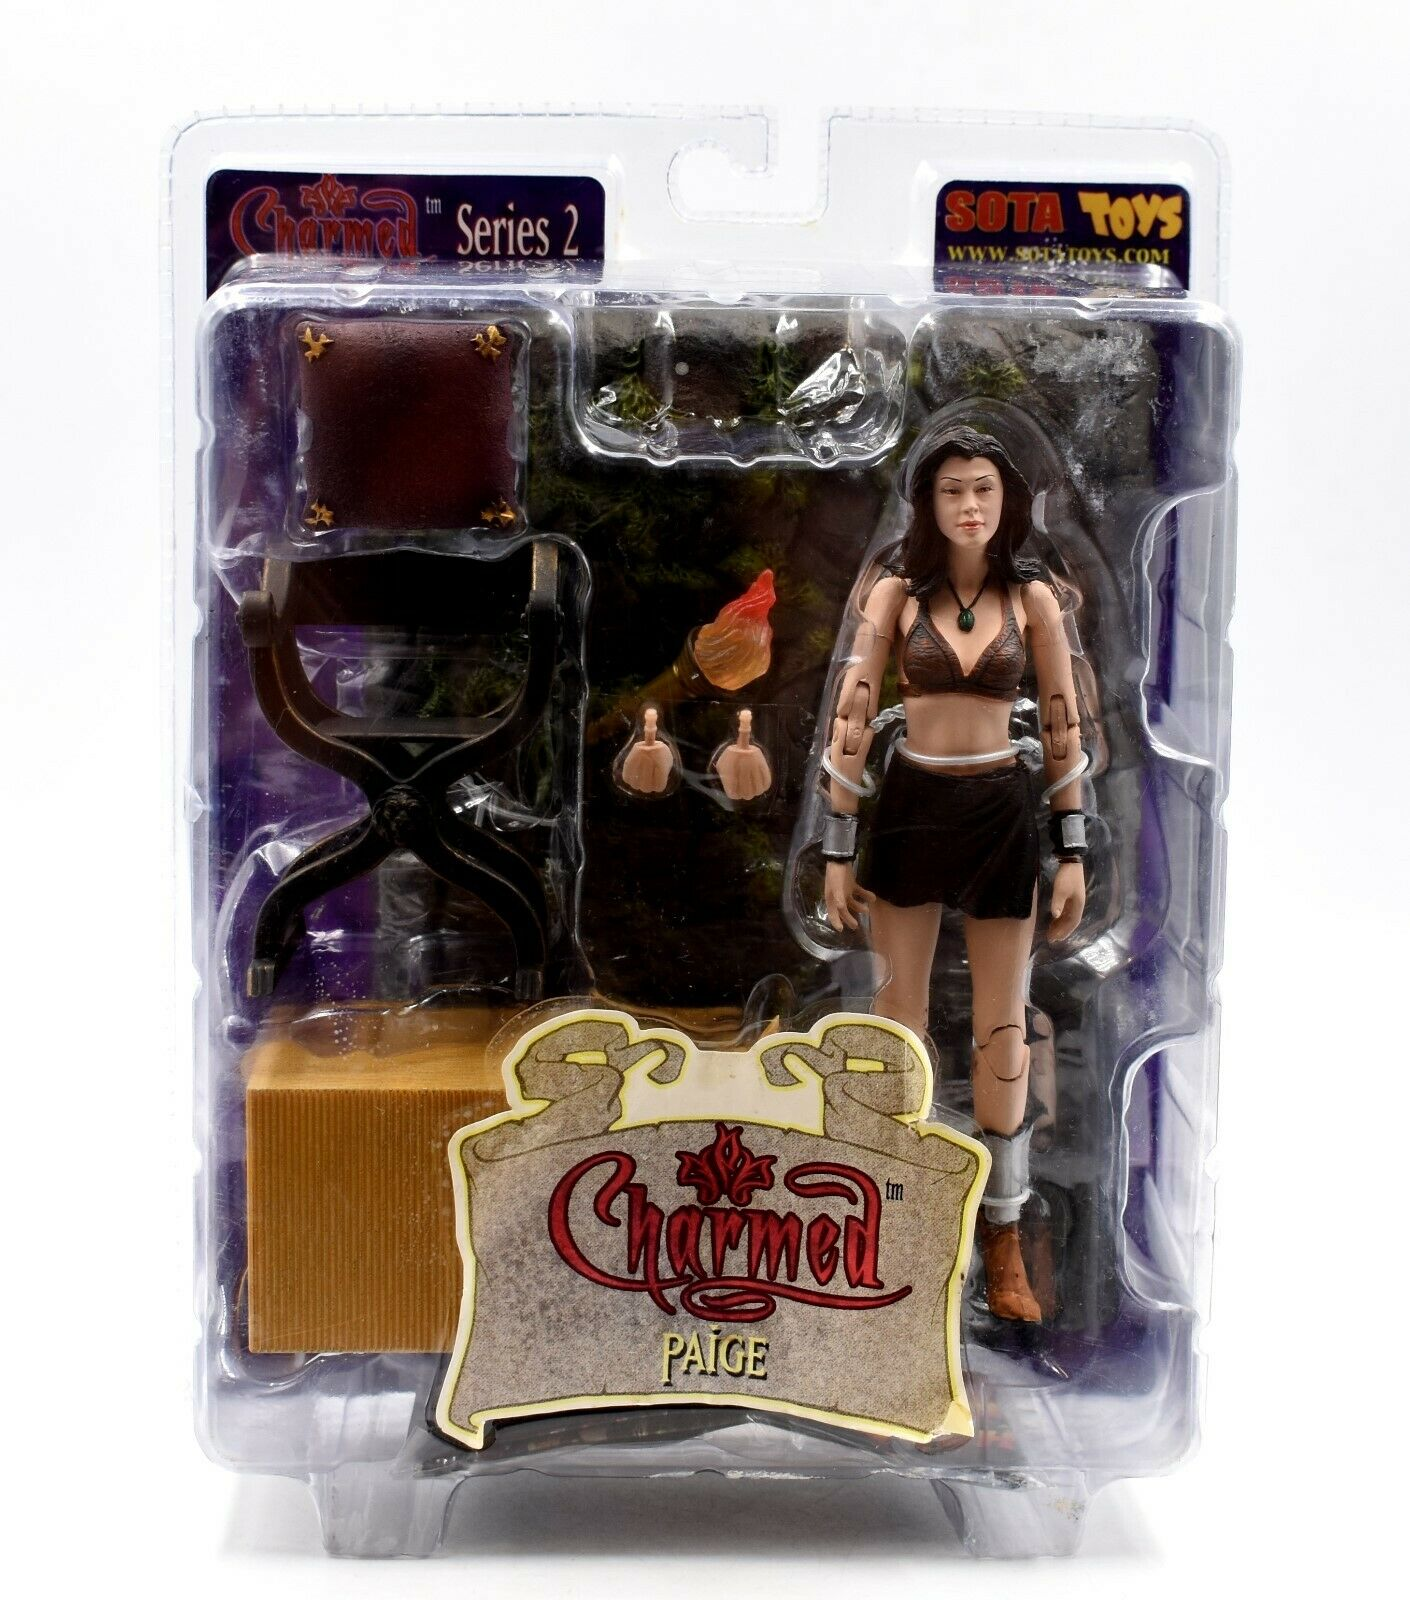 SOTA Toys - - - Charmed Series 2 - Paige Action Figure 3397c8